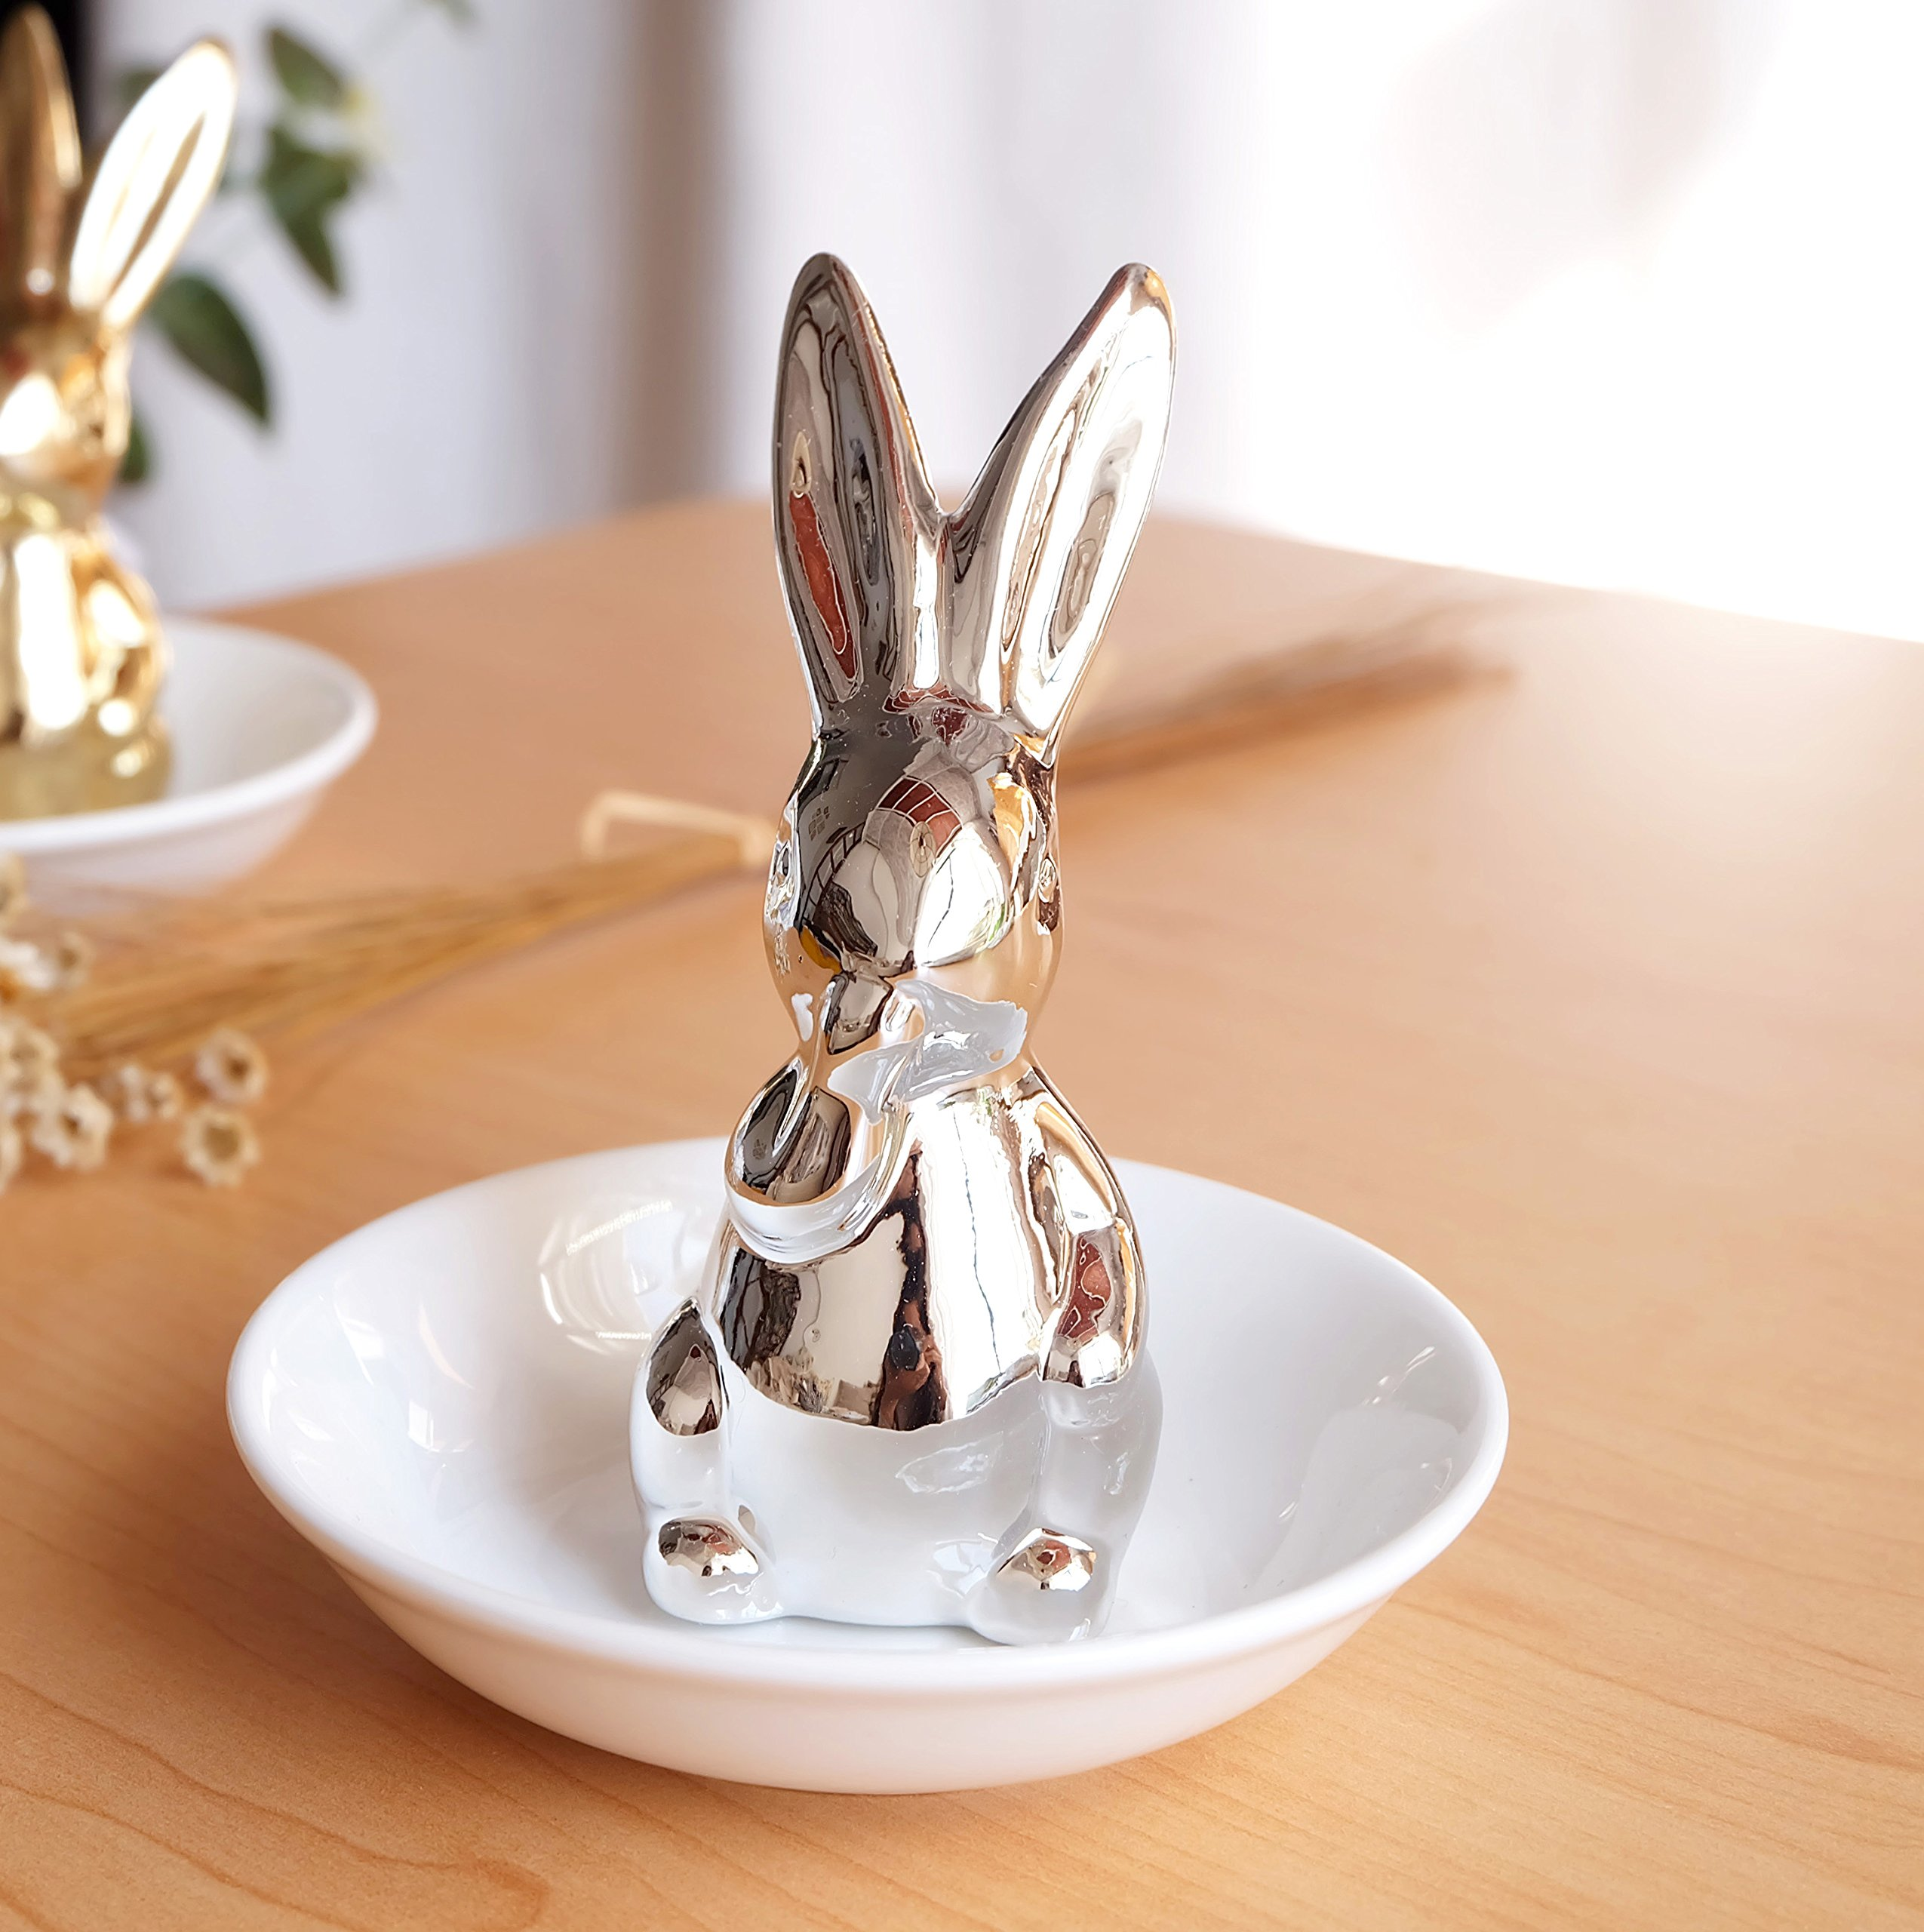 Sliver Eat Hand Bunny Rabbit Ring Dish Holder Jewelry Tray Display Storage Case Organizer